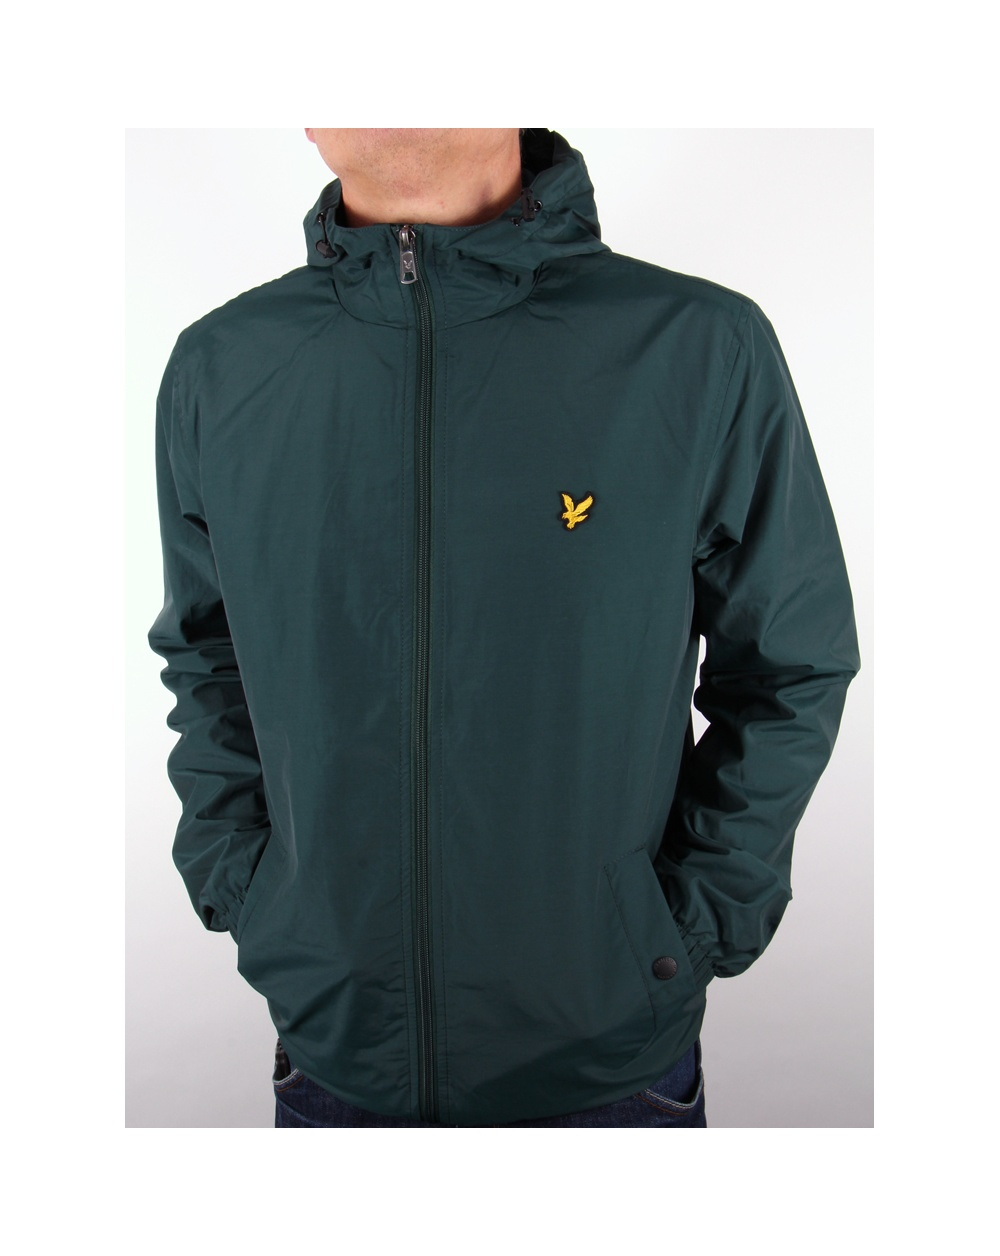 lyle and scott zip through hooded jacket scotts green lyle scott zip through hooded jacket. Black Bedroom Furniture Sets. Home Design Ideas